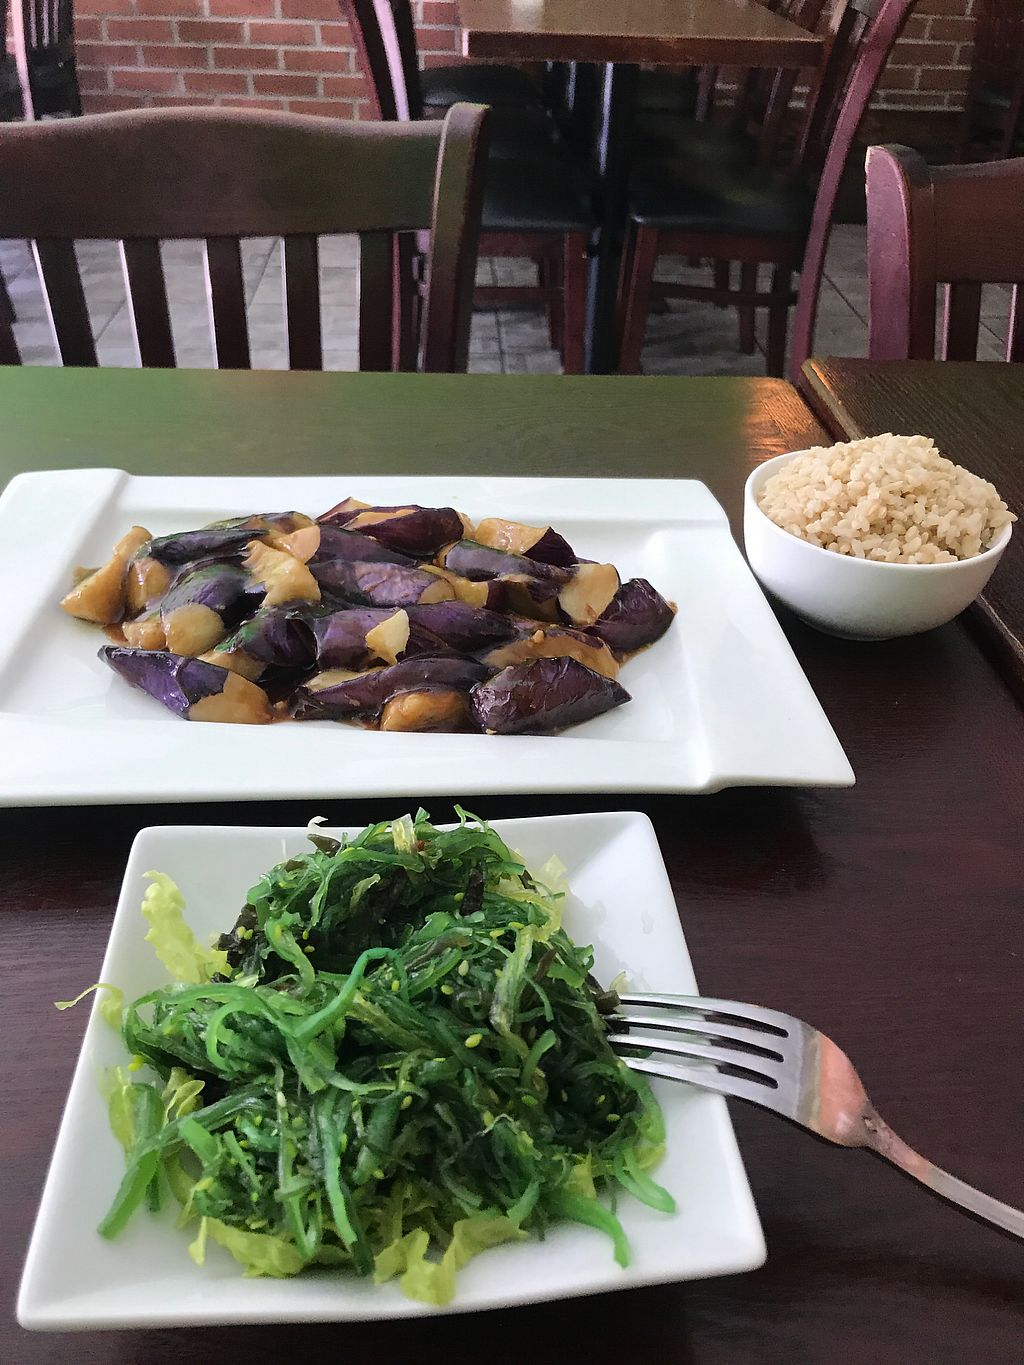 """Photo of CoCo Lin Vegetarian House  by <a href=""""/members/profile/vegan4everr"""">vegan4everr</a> <br/>Seaweed Salad and Eggplant in Garlic ????? <br/> September 14, 2017  - <a href='/contact/abuse/image/25655/304377'>Report</a>"""